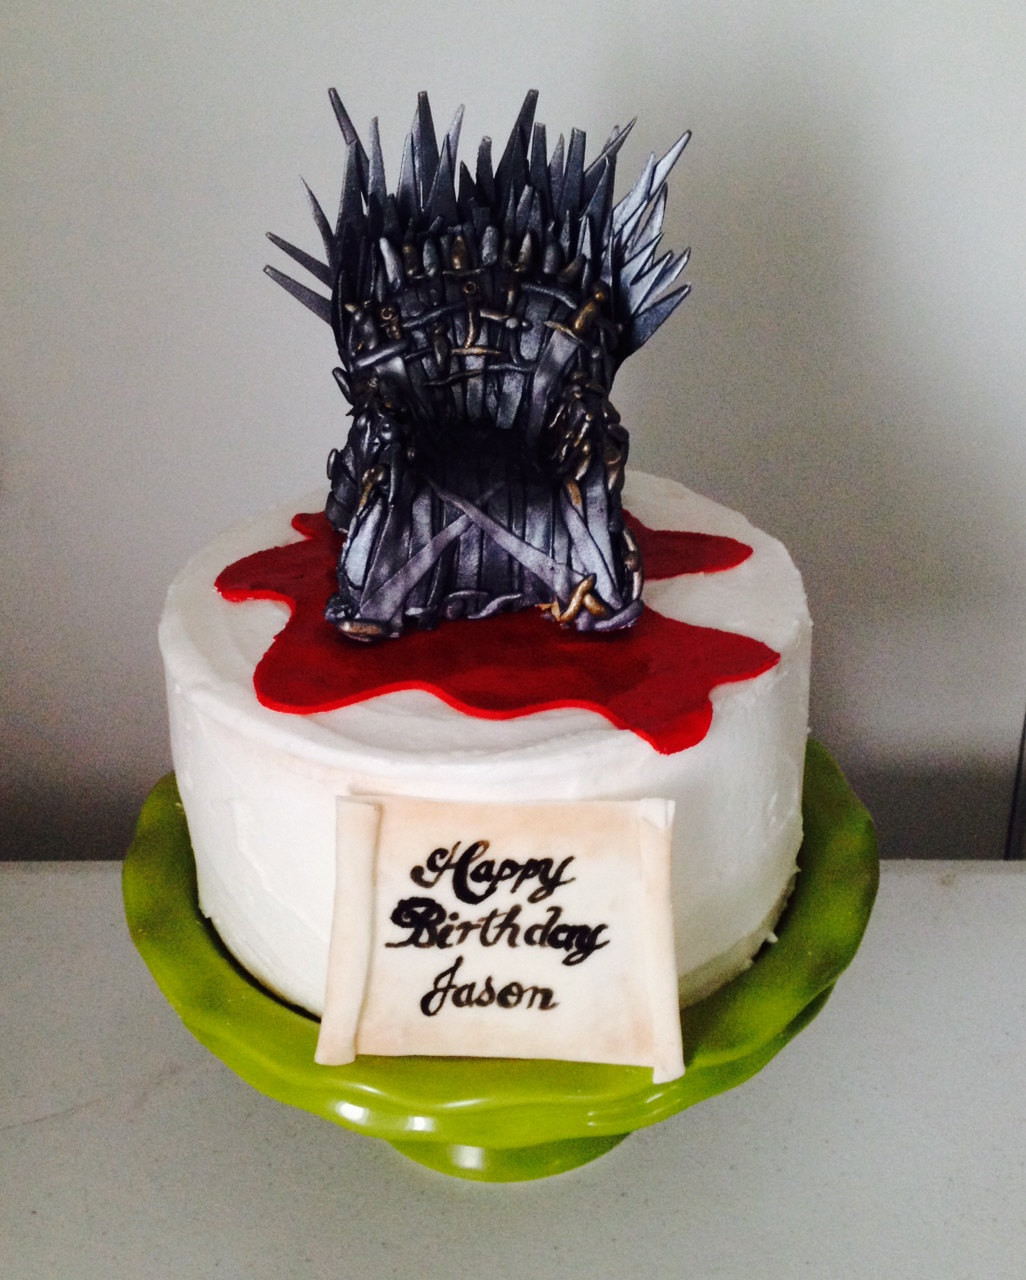 Best ideas about Game Of Thrones Birthday Cake . Save or Pin Game of Thrones Edible Iron Throne Cake Topper Now.